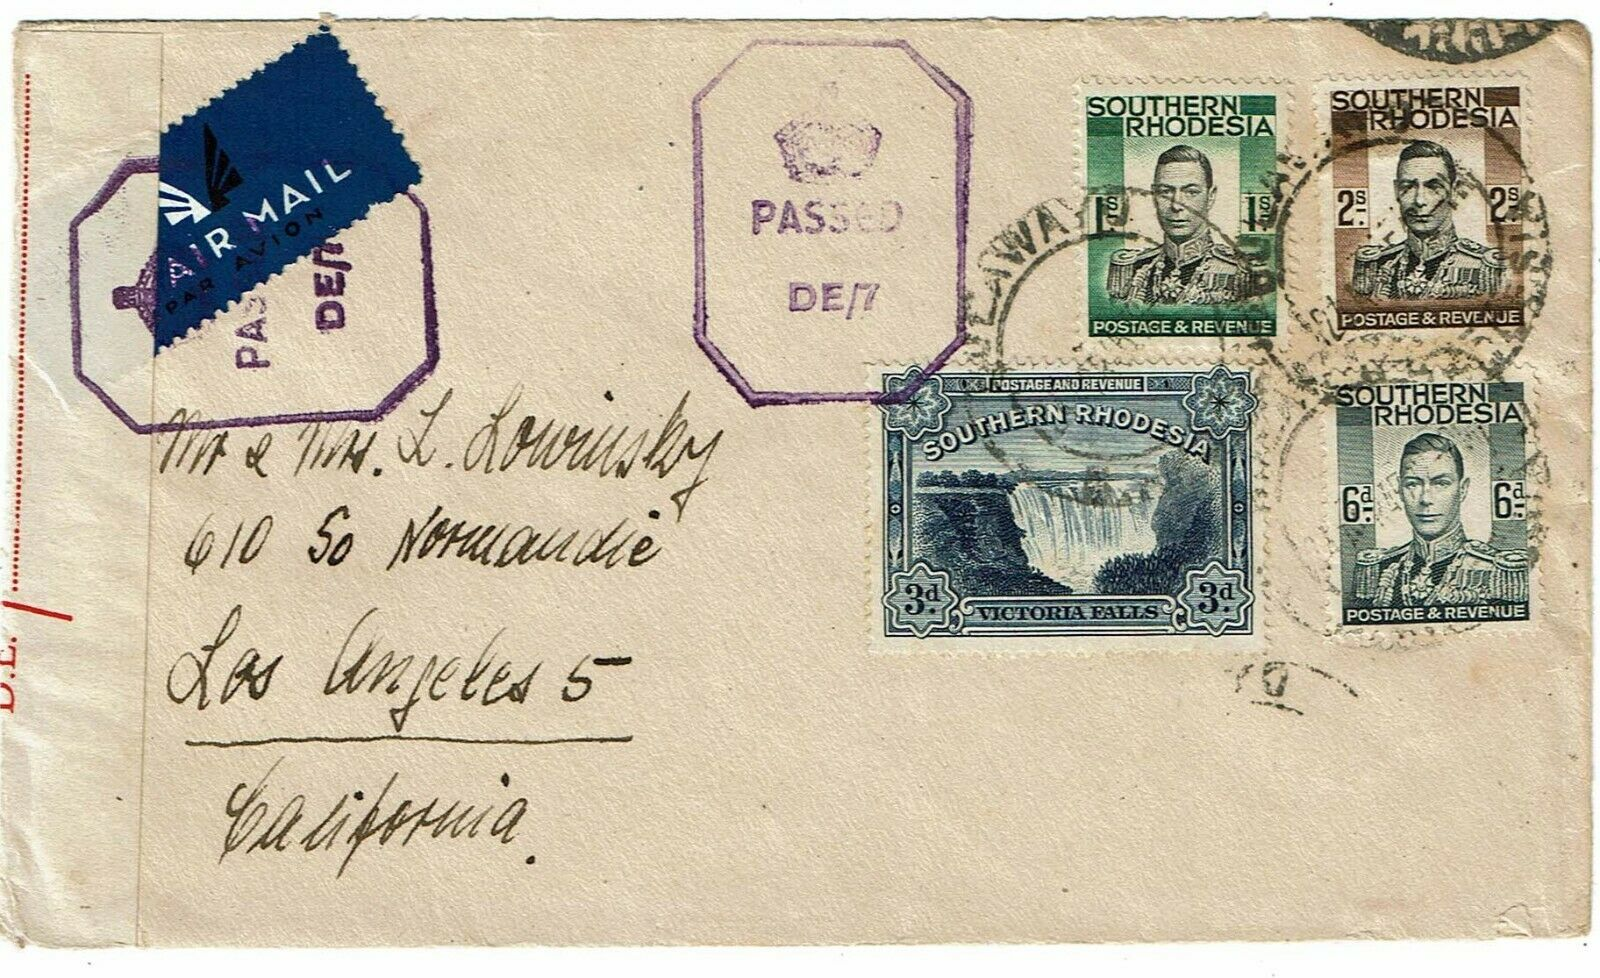 Southern Rhodesia 1945 Bulawayo cancel on airmail cover to the U.S., censored